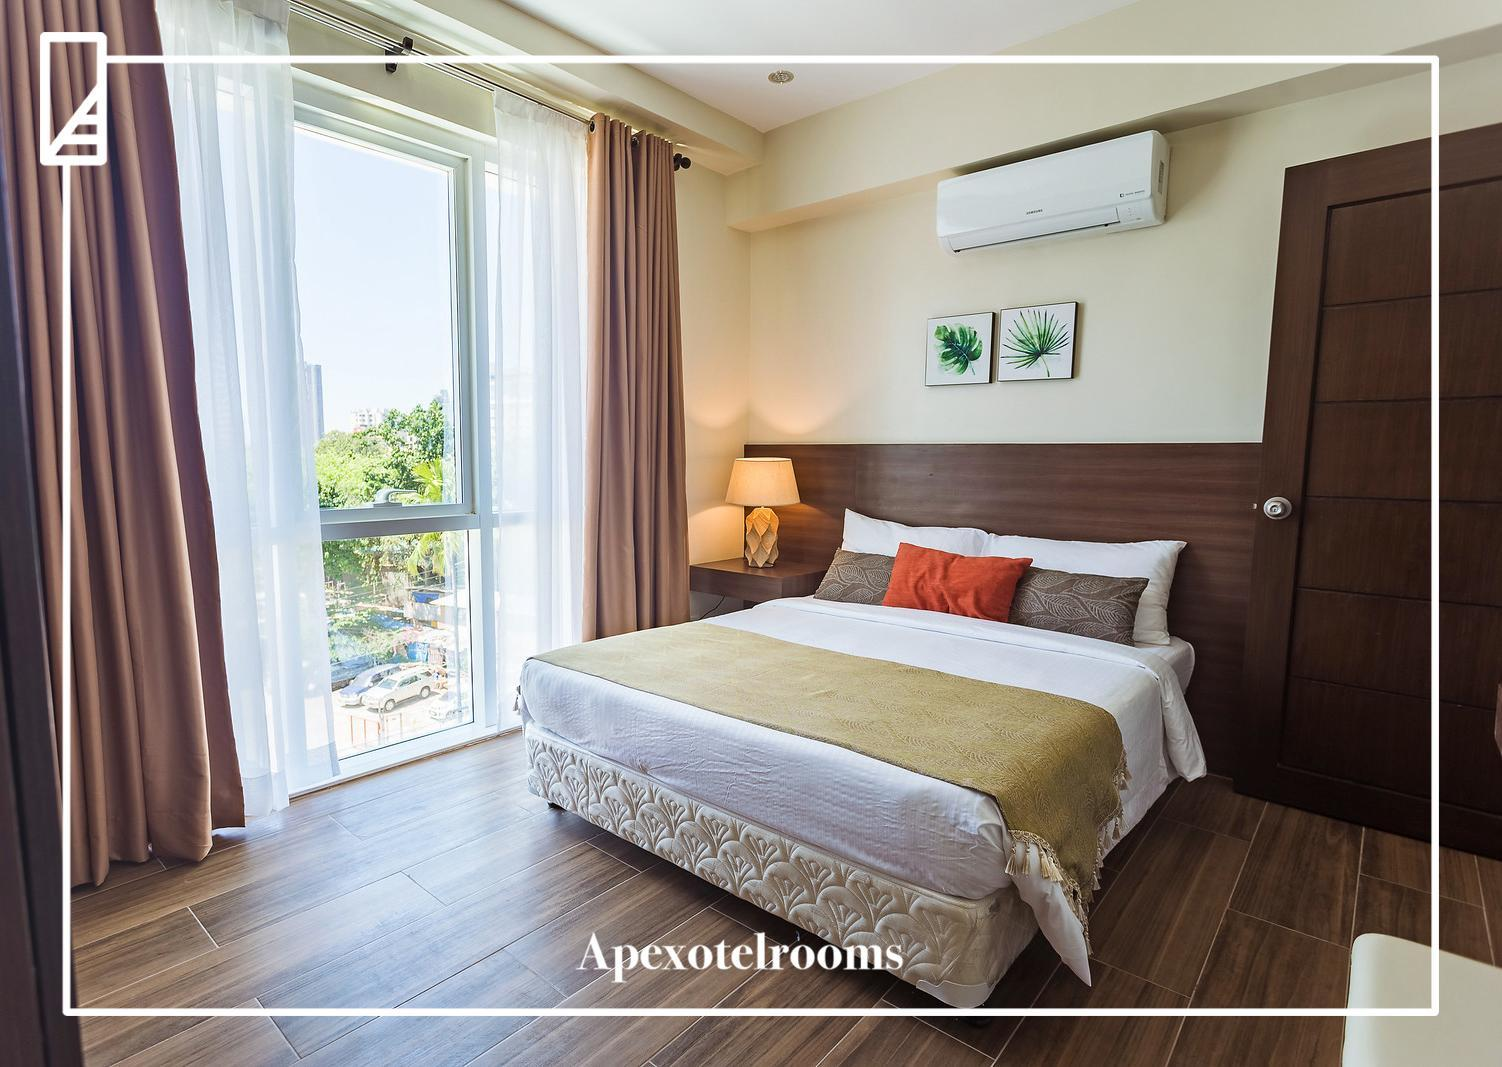 Apartment Hotel Luxury For Families And Groups Best